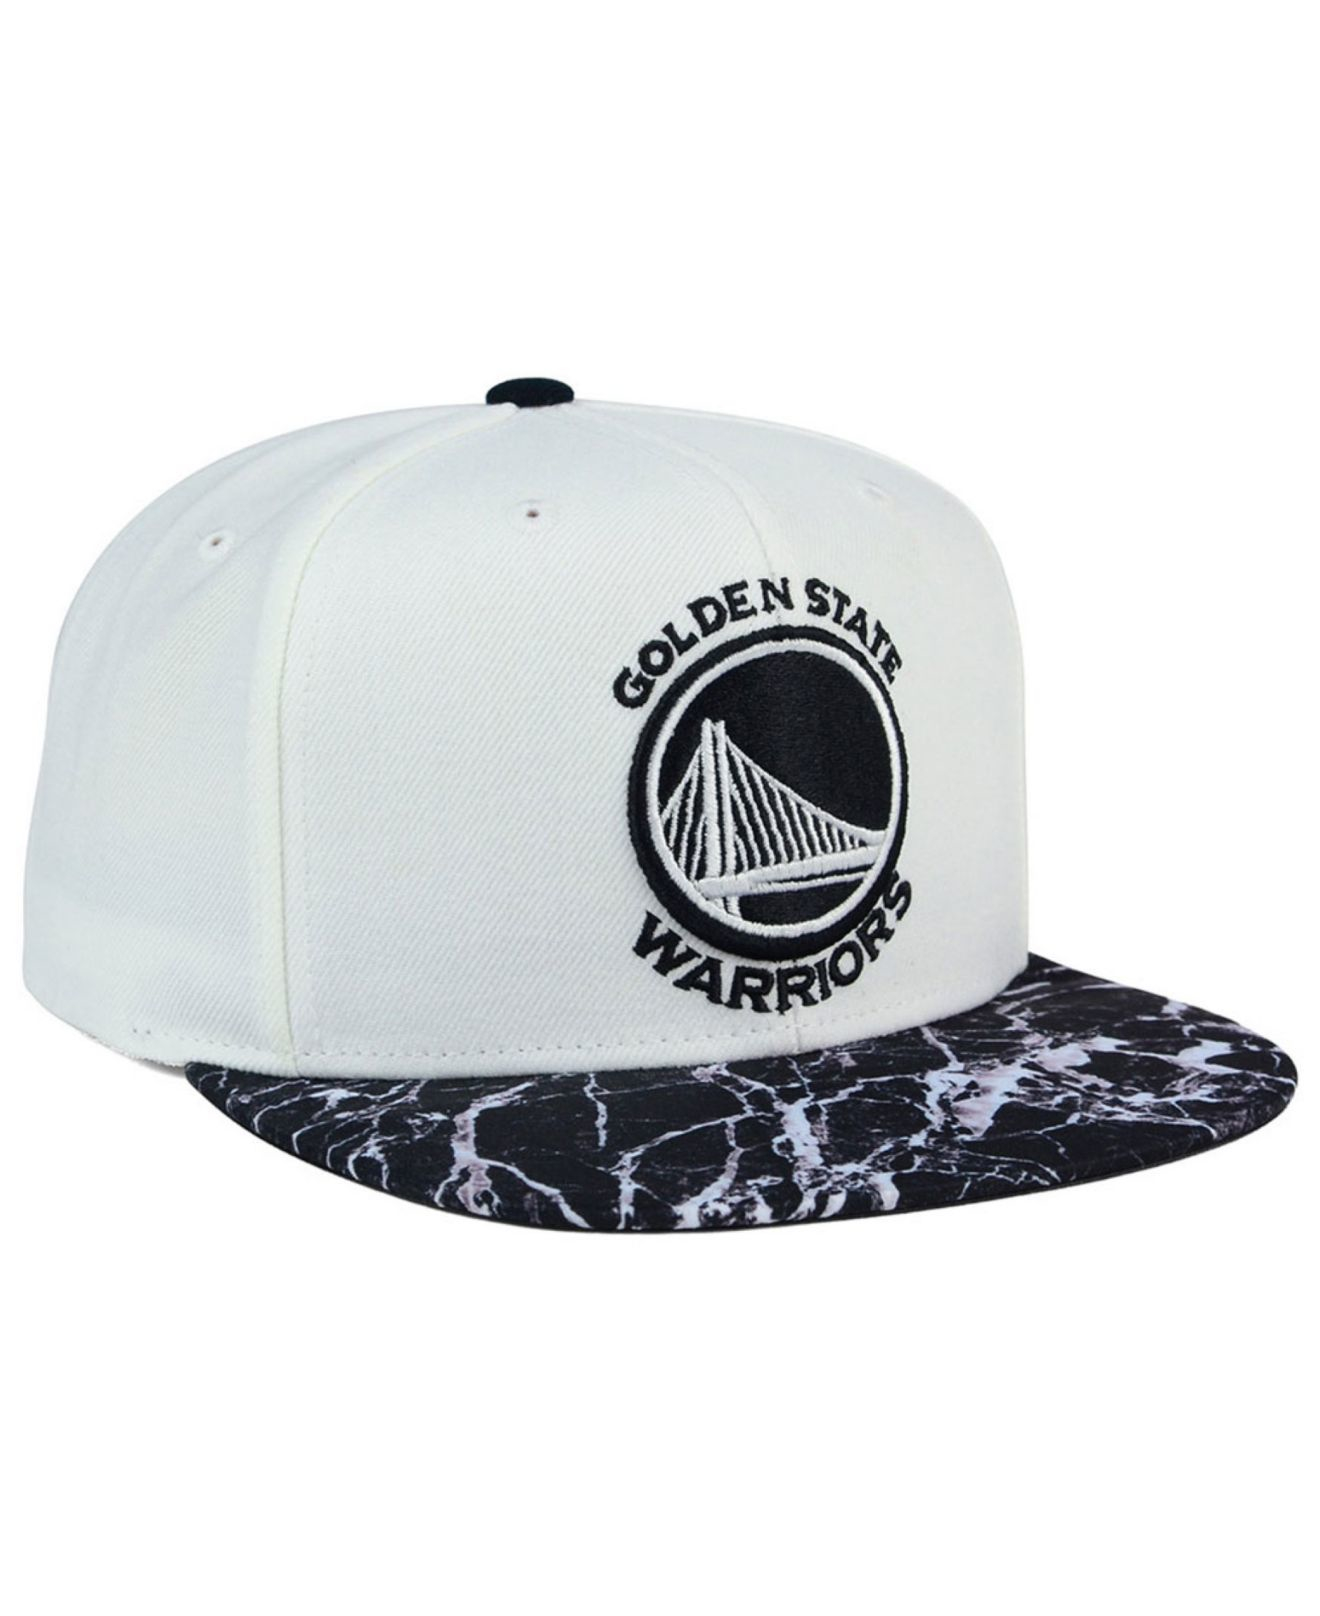 ... denmark lyst adidas golden state warriors white marble snapback cap in  6c3a6 8c469 ... 48d8965c3c0